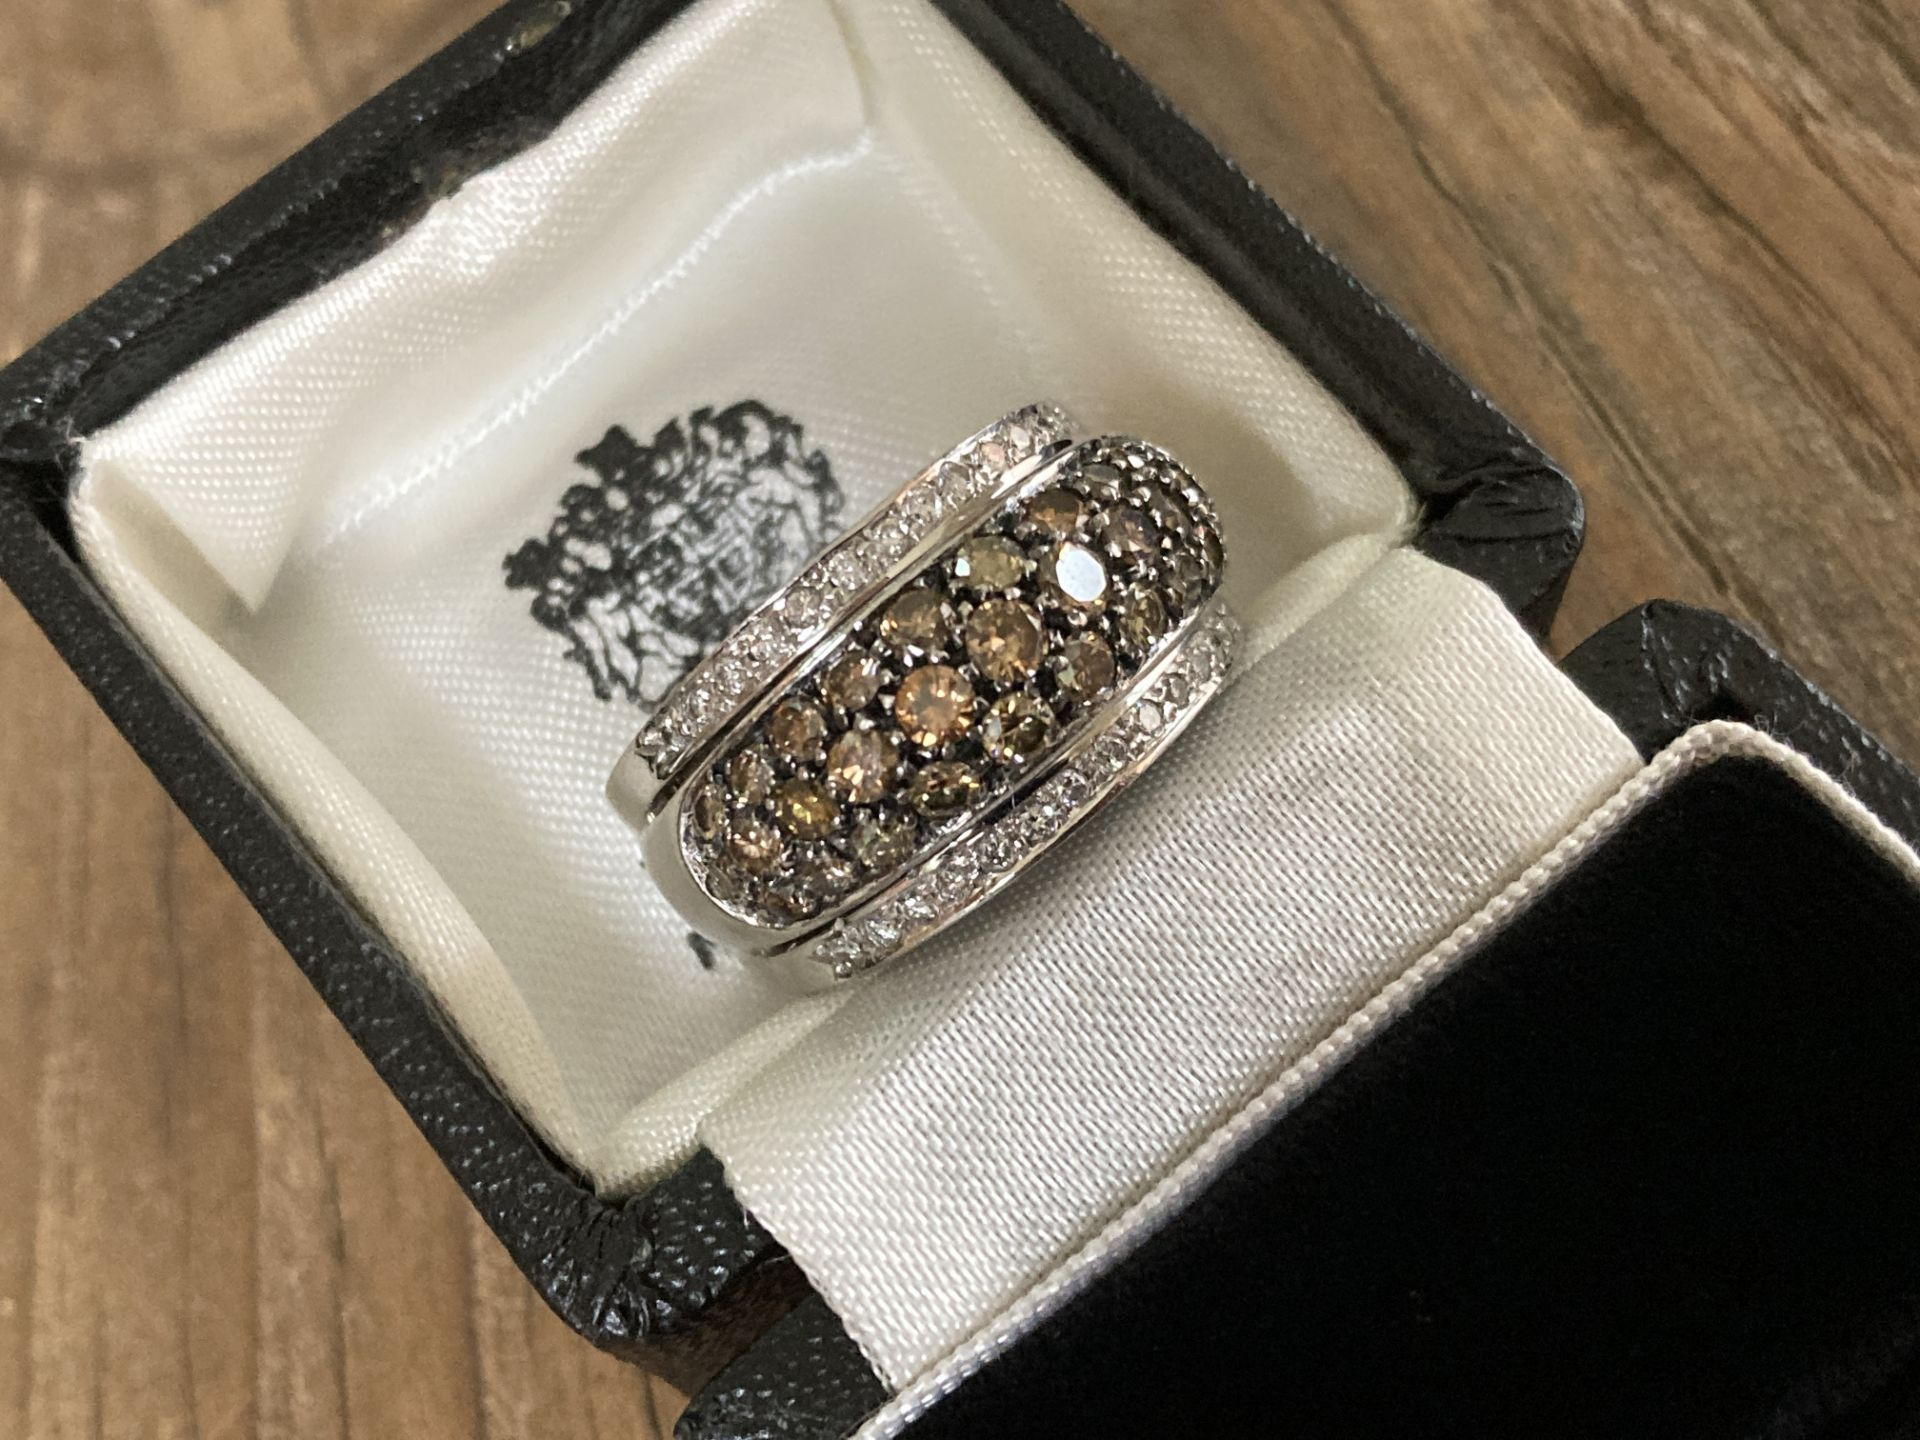 18CT WHITE GOLD 2.5CT BRILLIANT CUT DIAMOND RING (MIXED COLOUR DESIGN) - SIZE: T 1/2 / WEIGHT: 18.6G - Image 3 of 6